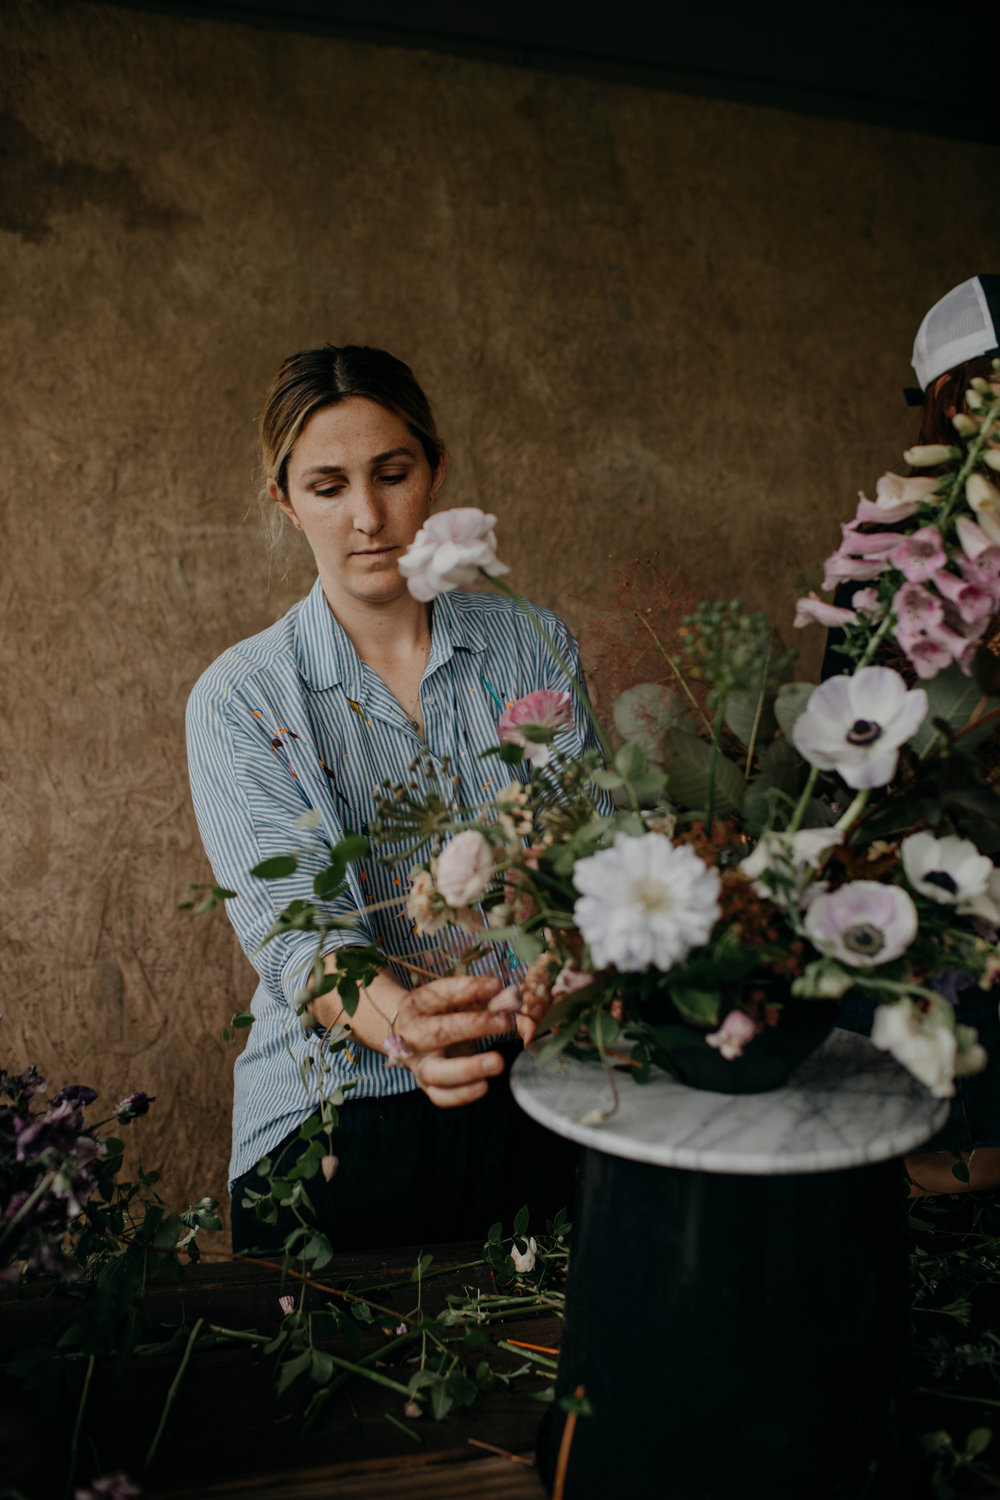 nashville floral workshop nashville tennessee wedding photographer56.jpg